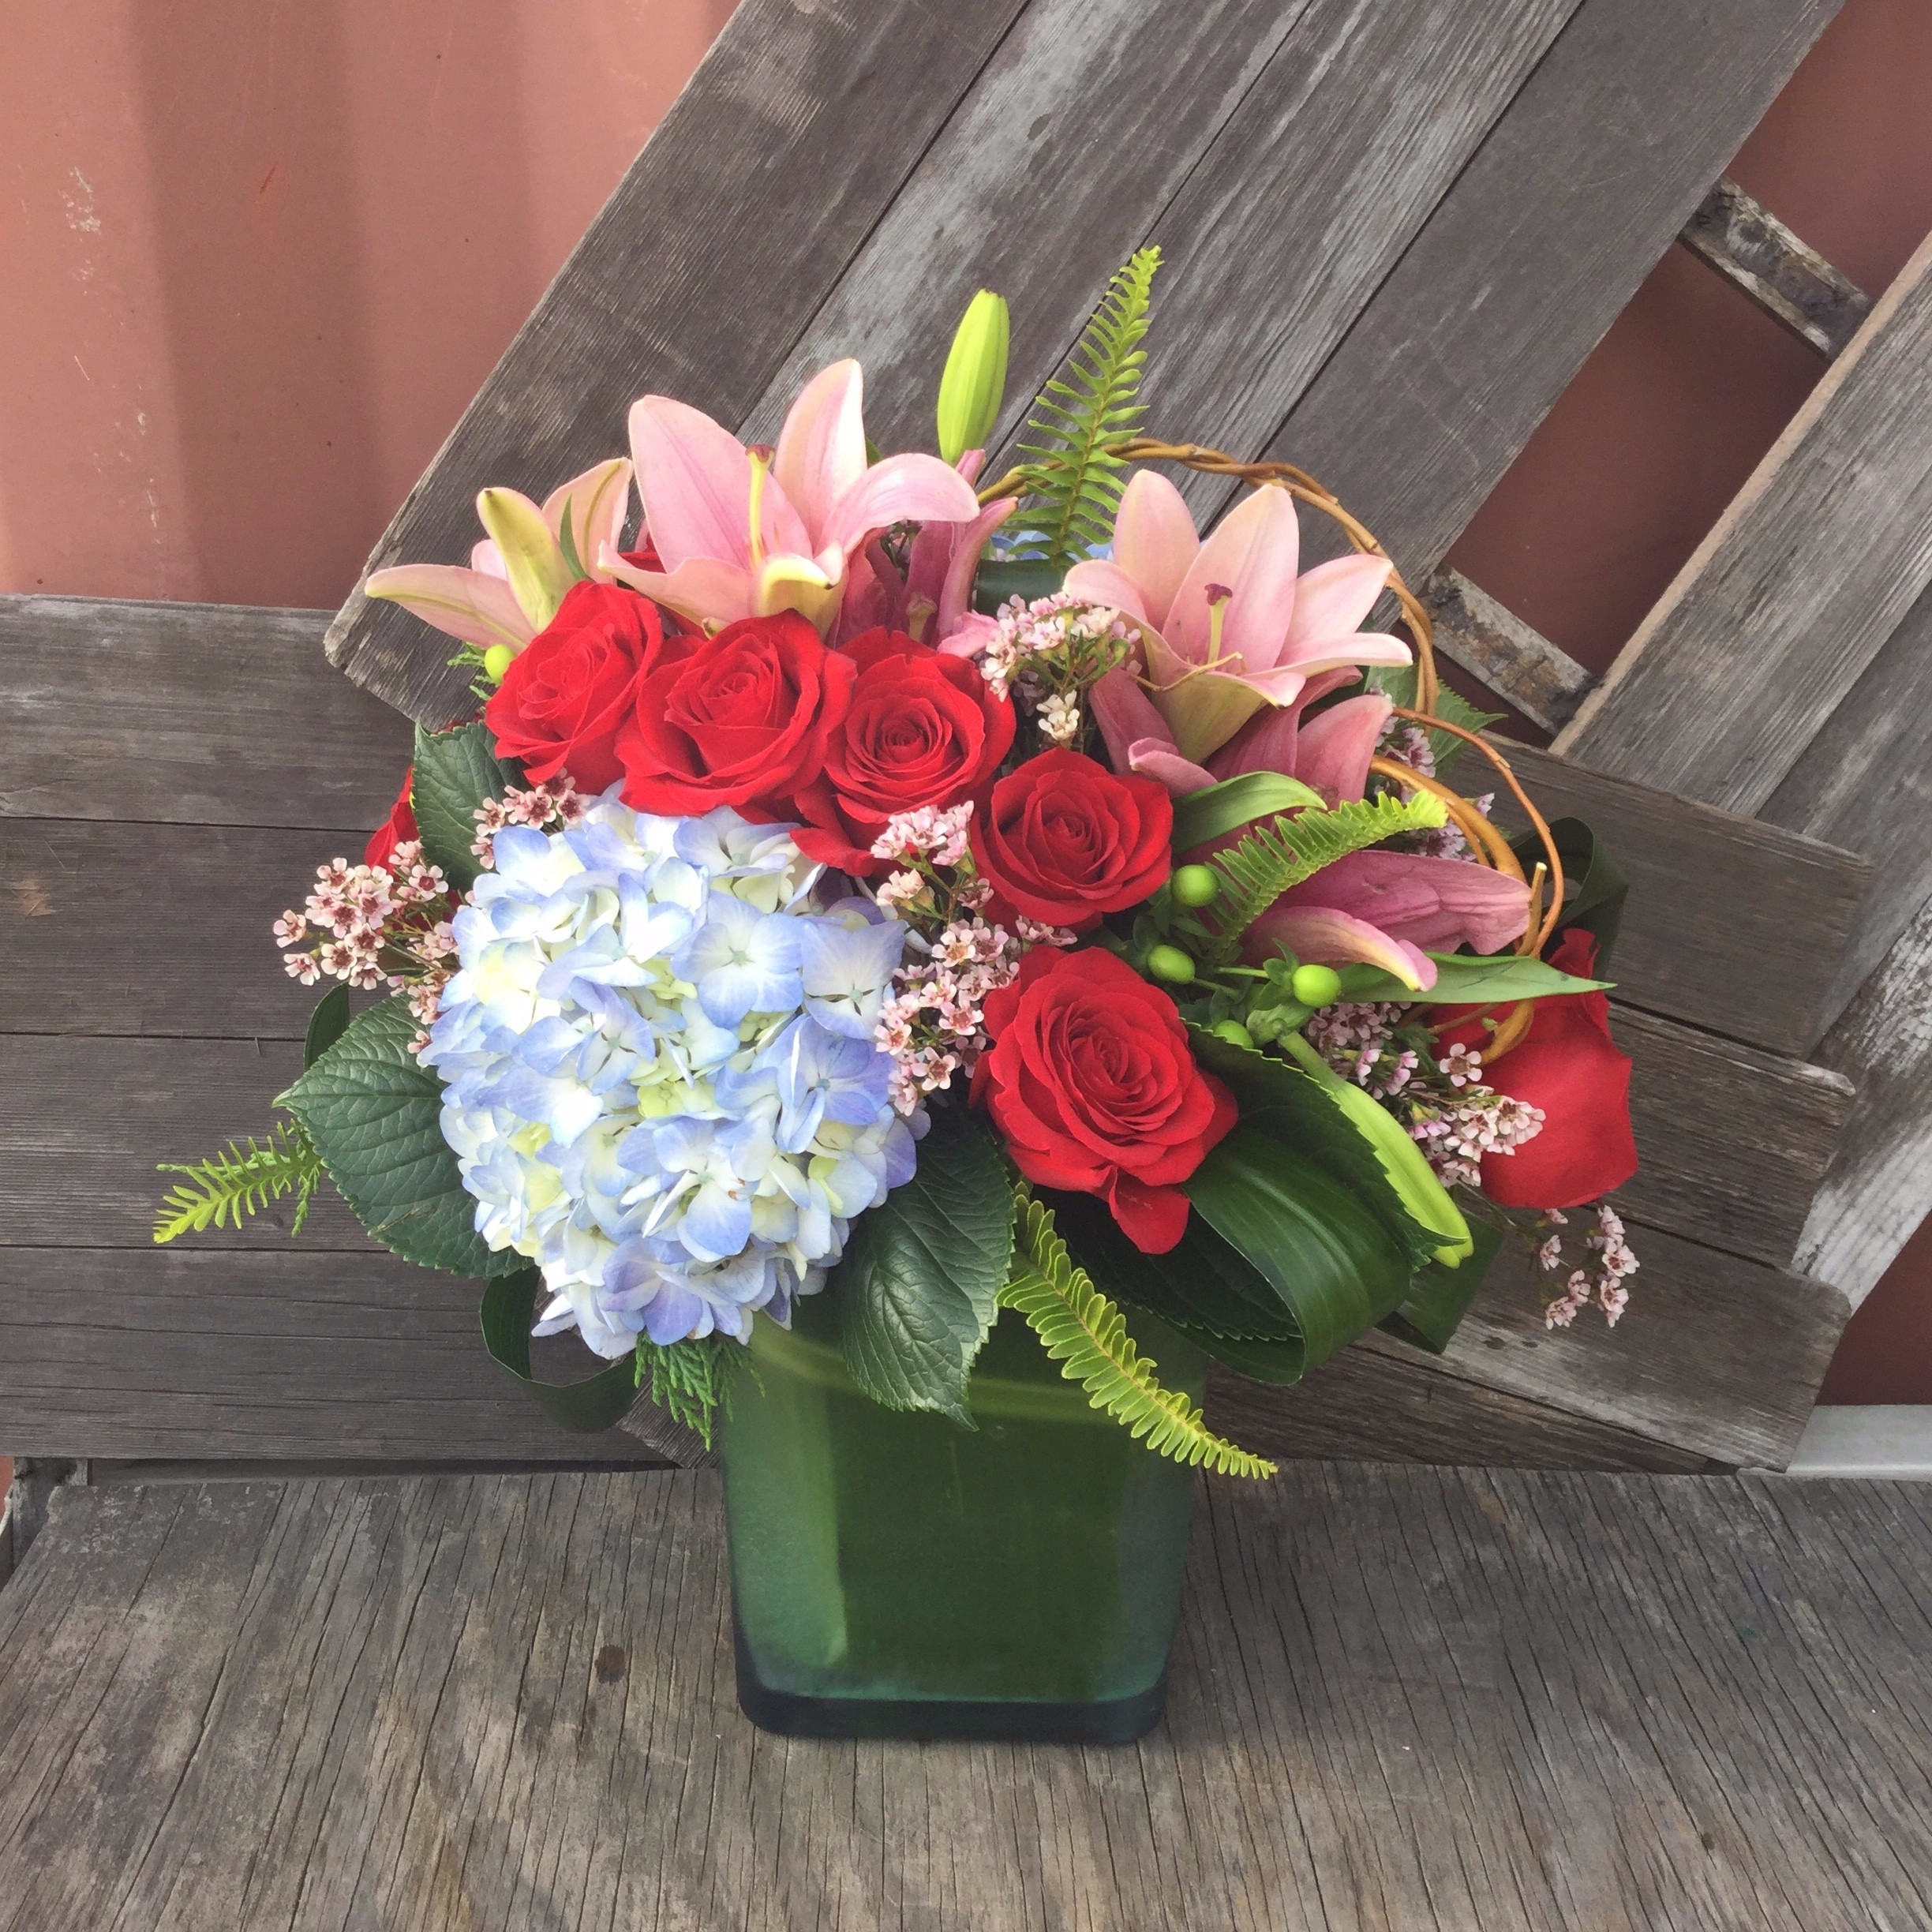 26 Unique How to Make Cemetery Vase Flowers 2021 free download how to make cemetery vase flowers of new orleans florist flower delivery by monas accents for extravagant blooms